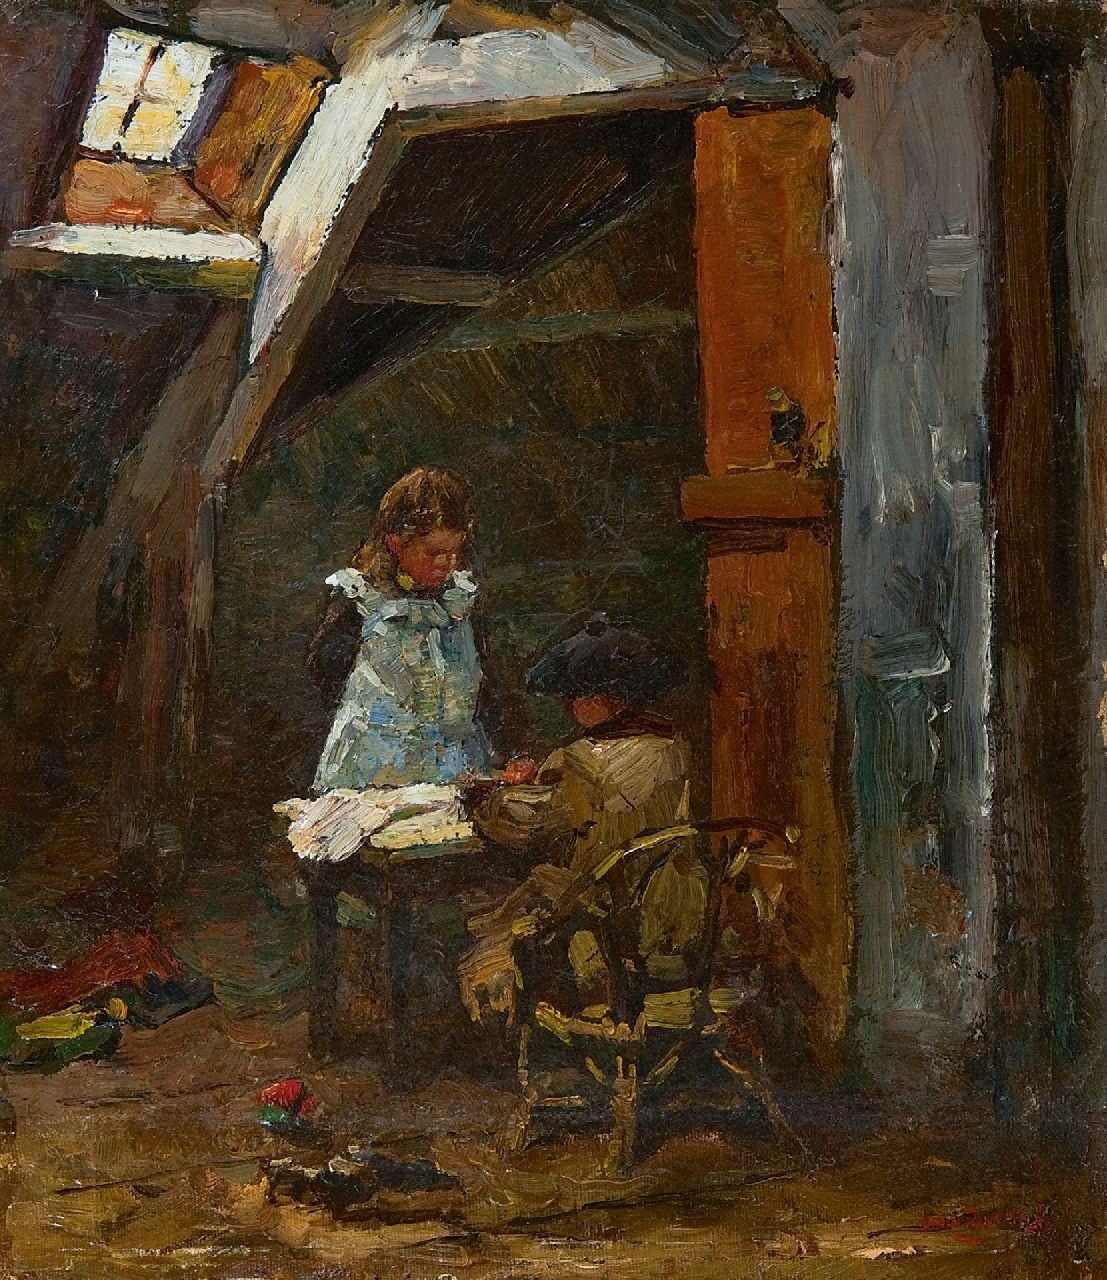 Zwart W.H.P.J. de | Wilhelmus Hendrikus Petrus Johannes 'Willem' de Zwart | Paintings offered for sale | The painter's children looking at picture books, oil on canvas laid down on board 33.4 x 29.5 cm, signed l.r.